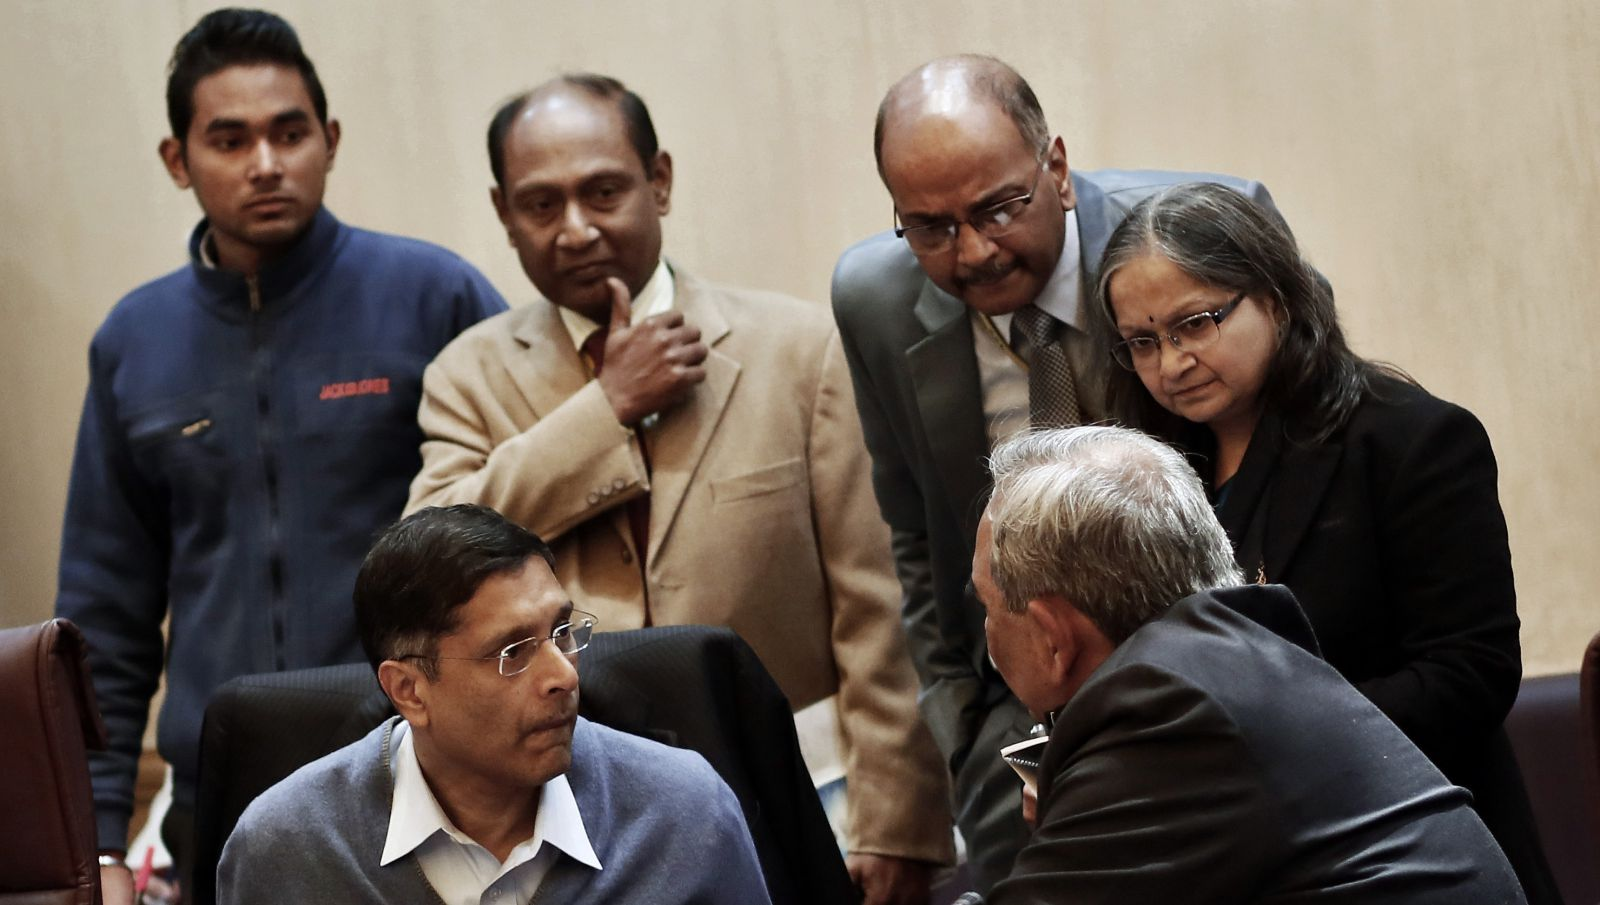 Chief economic adviser at India's Finance Ministry Arvind Subramanian (bottom L) listens to finance officials during their meeting in New Delhi January 8, 2015. A weak recovery from India's longest growth slowdown in decades is pushing Prime Minister Narendra Modi's advisers to consider loosening fiscal deficit targets